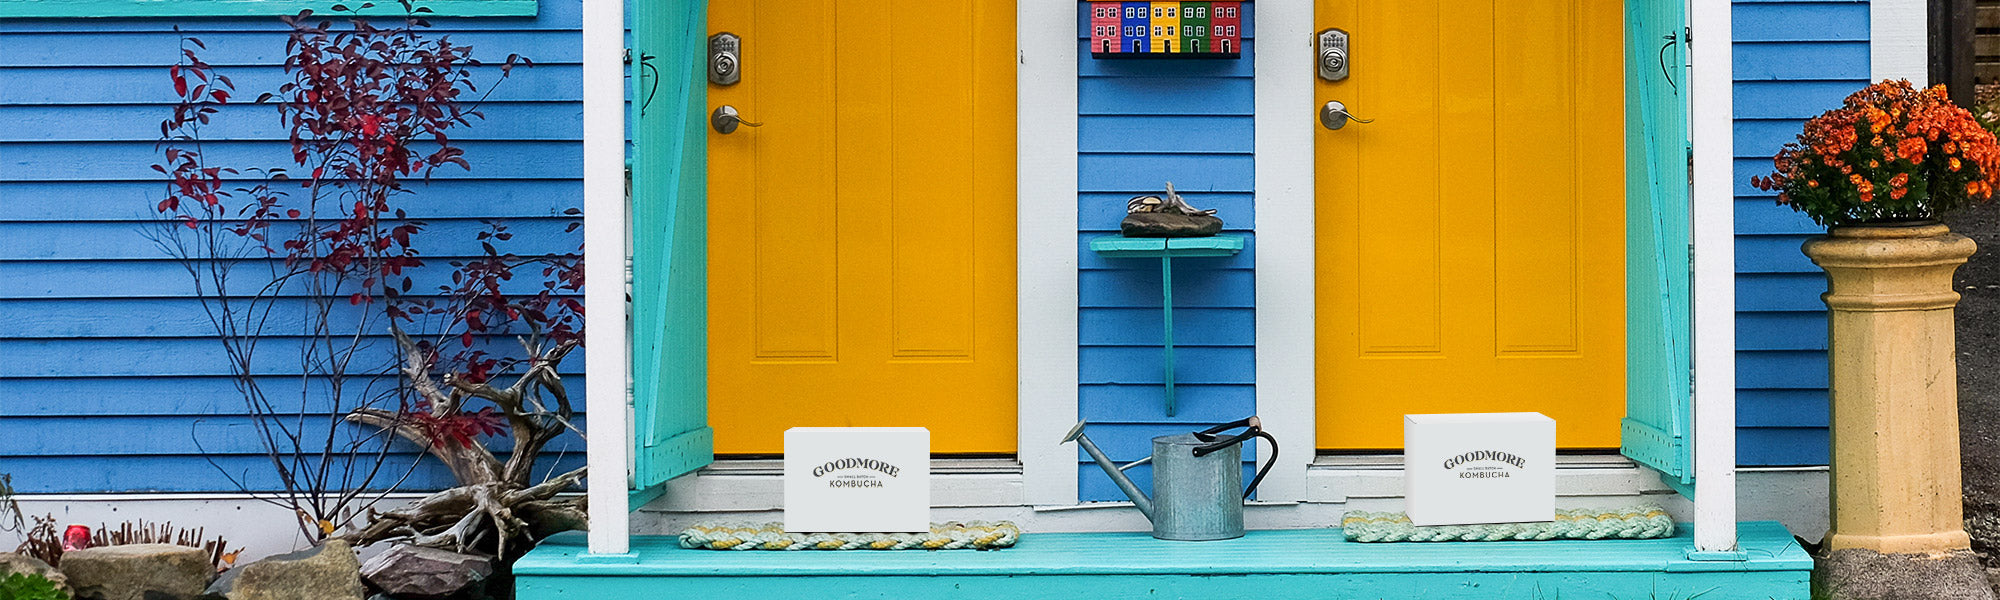 A delivery box of Goodmore Kombucha sitting on the doormat outside each of two side-by-side front doors.